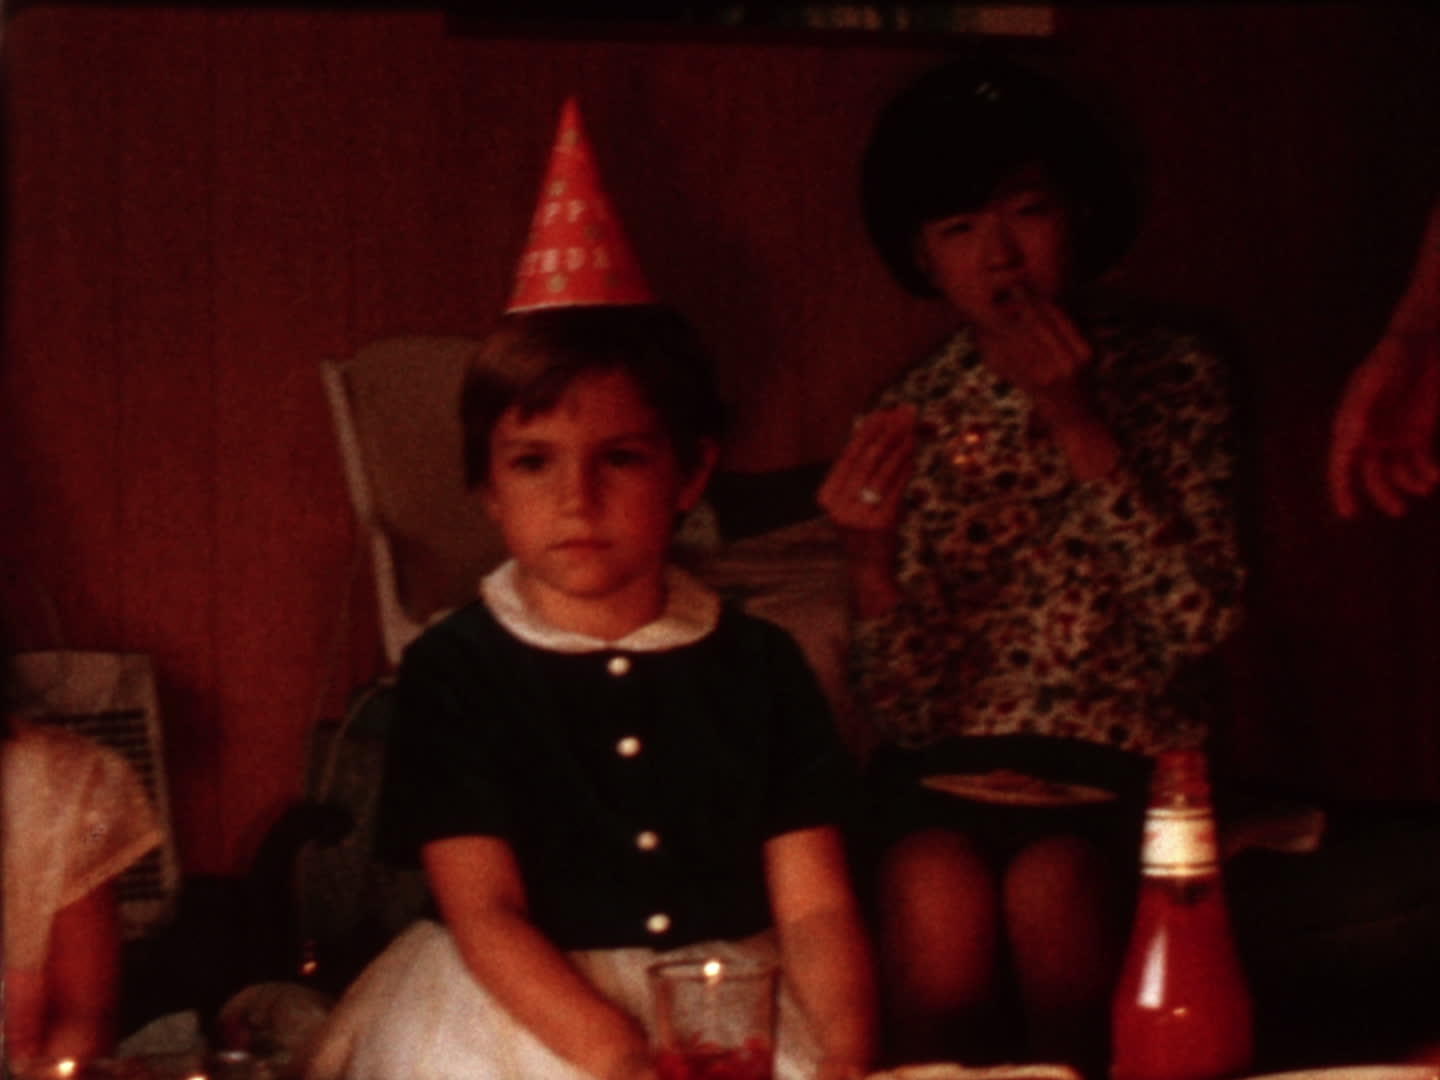 Eddy family videos : back-to-back birthdays